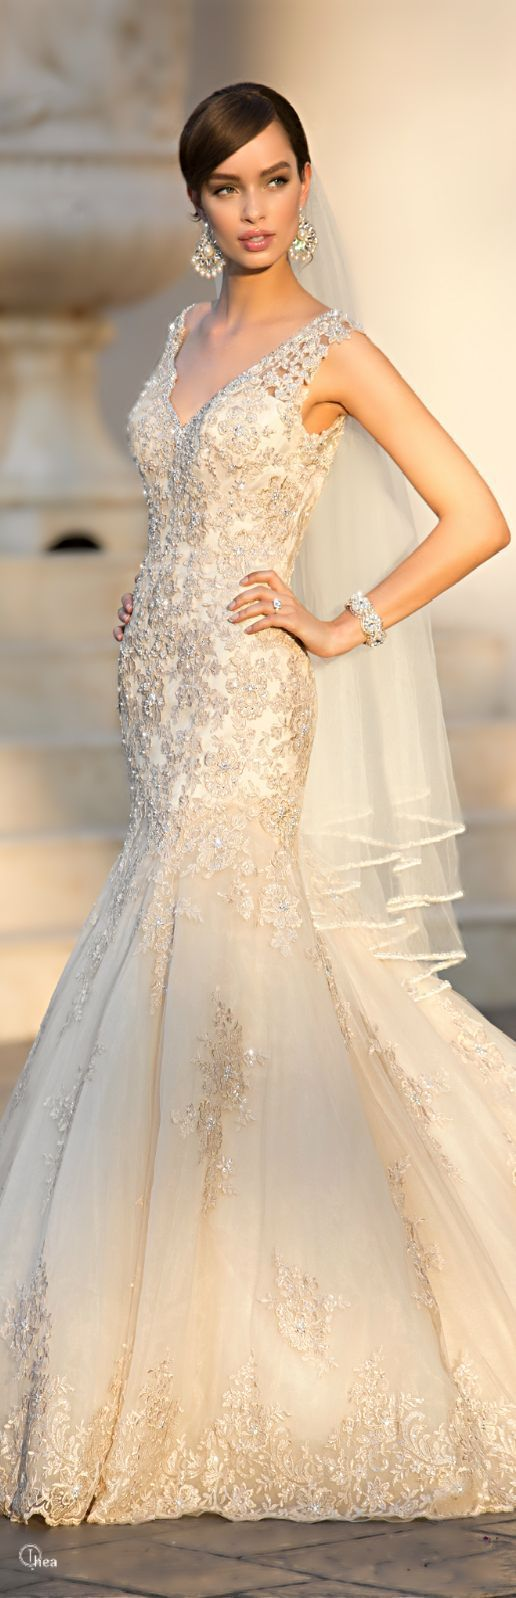 Champagne colored wedding dress  Wedding gown  Gowns  Pinterest  Pink wedding gowns Gowns and